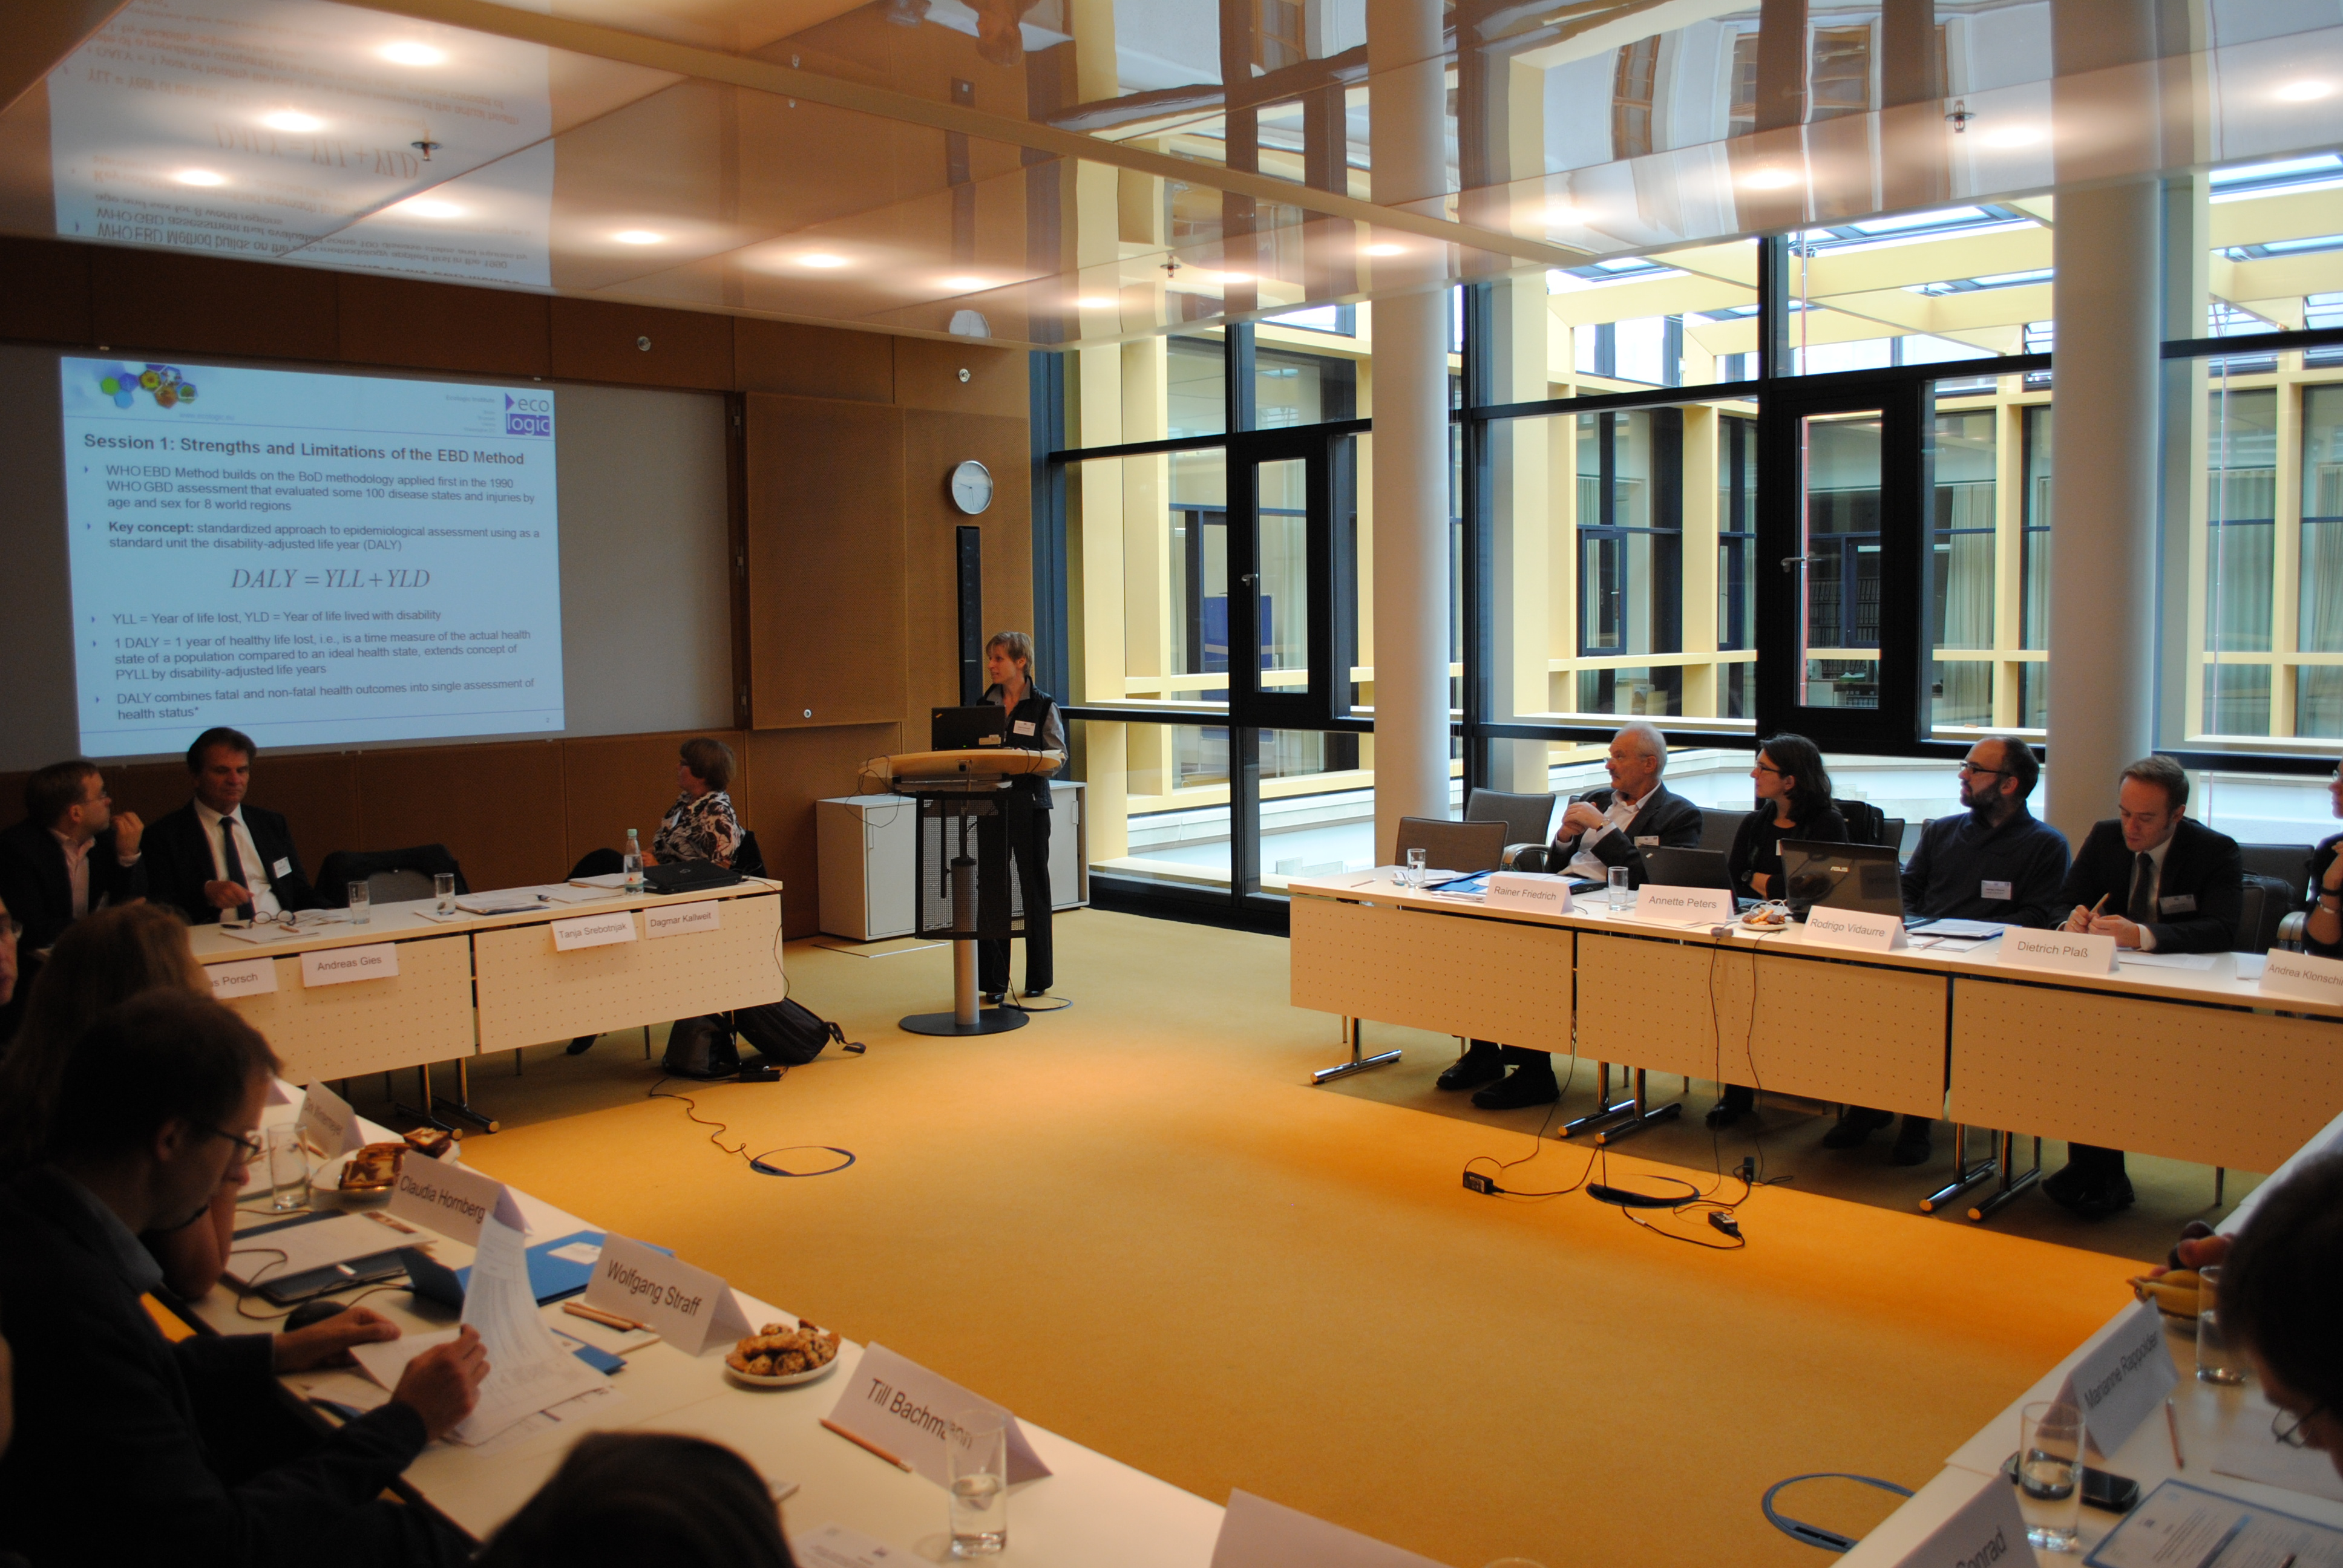 Expert Bielefeld expert discussion reviewing the methodological foundations of the